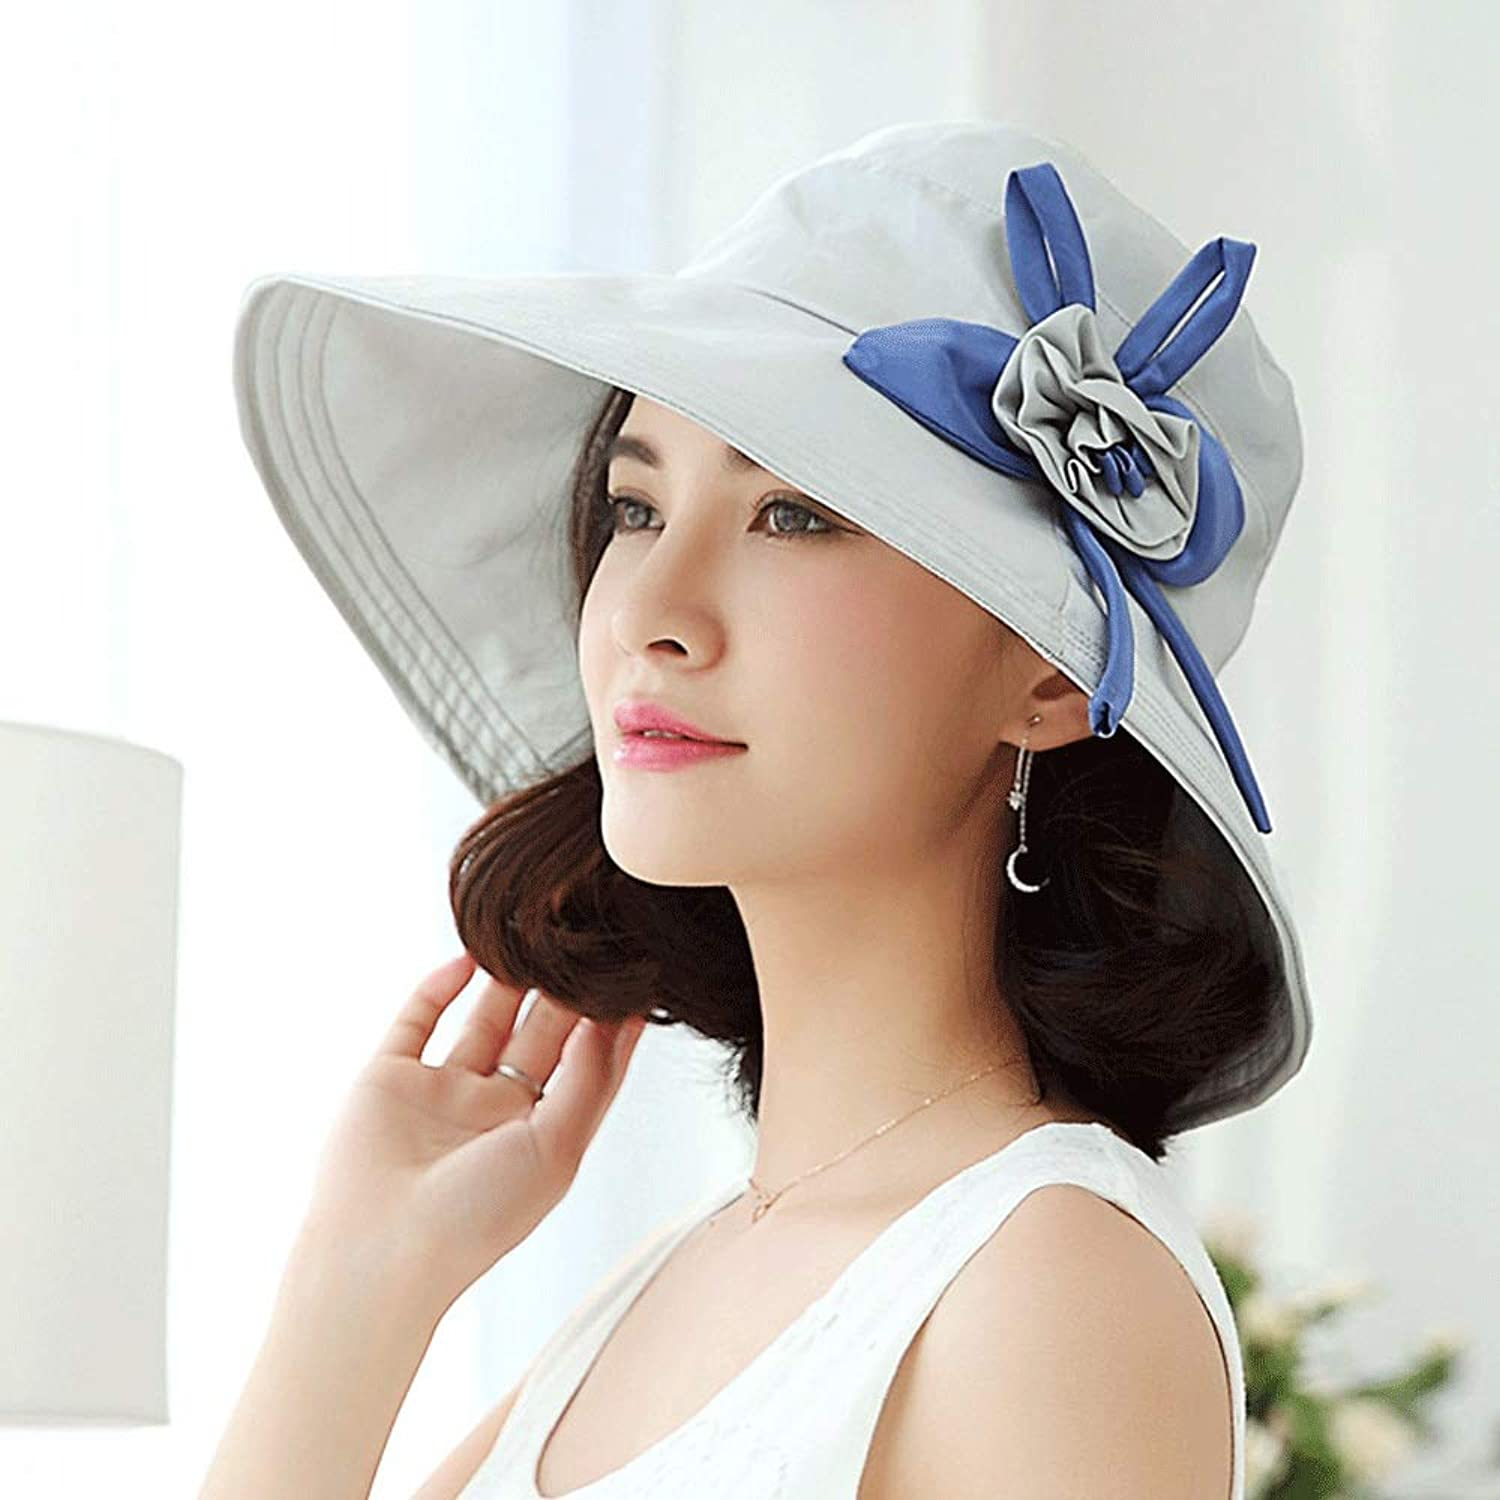 YD Hat  Women's Summer Travel Sun Hat Wild Sunshade Fisherman Hat UV Predection Foldable Sun Hat (5 colors to Choose from)    (color   D)